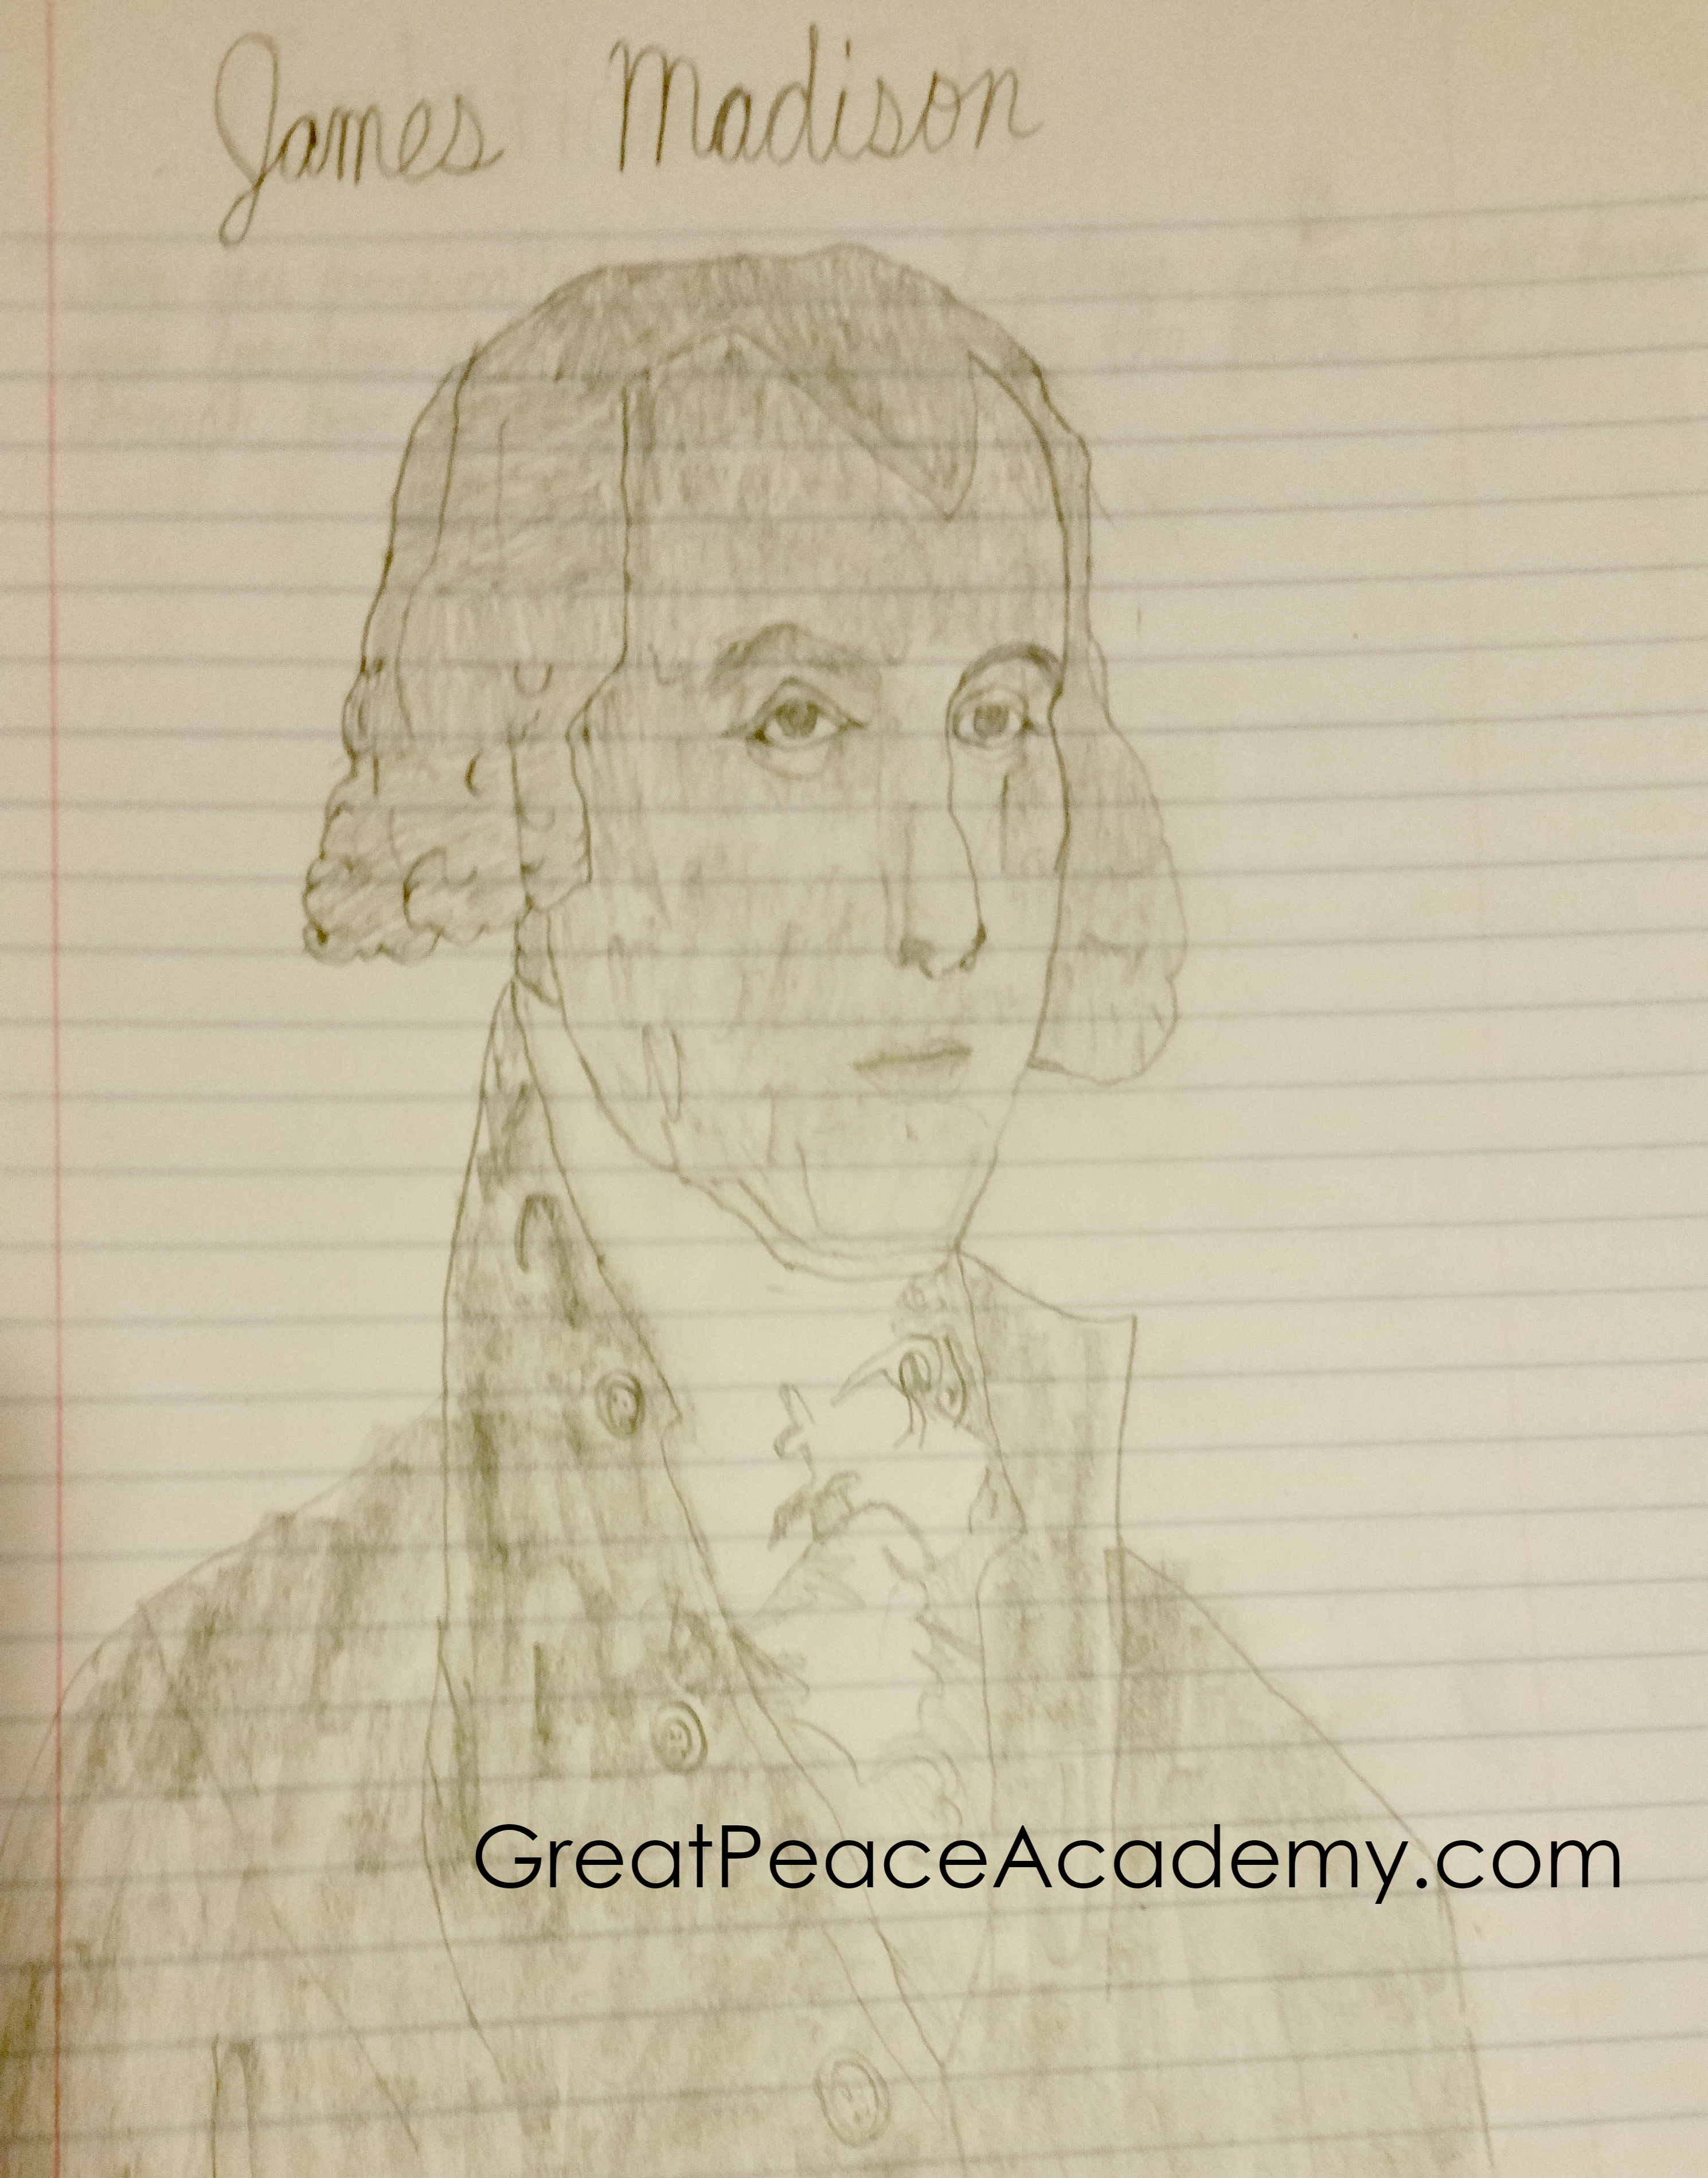 Sketch of James Madison by Jonathan Brown